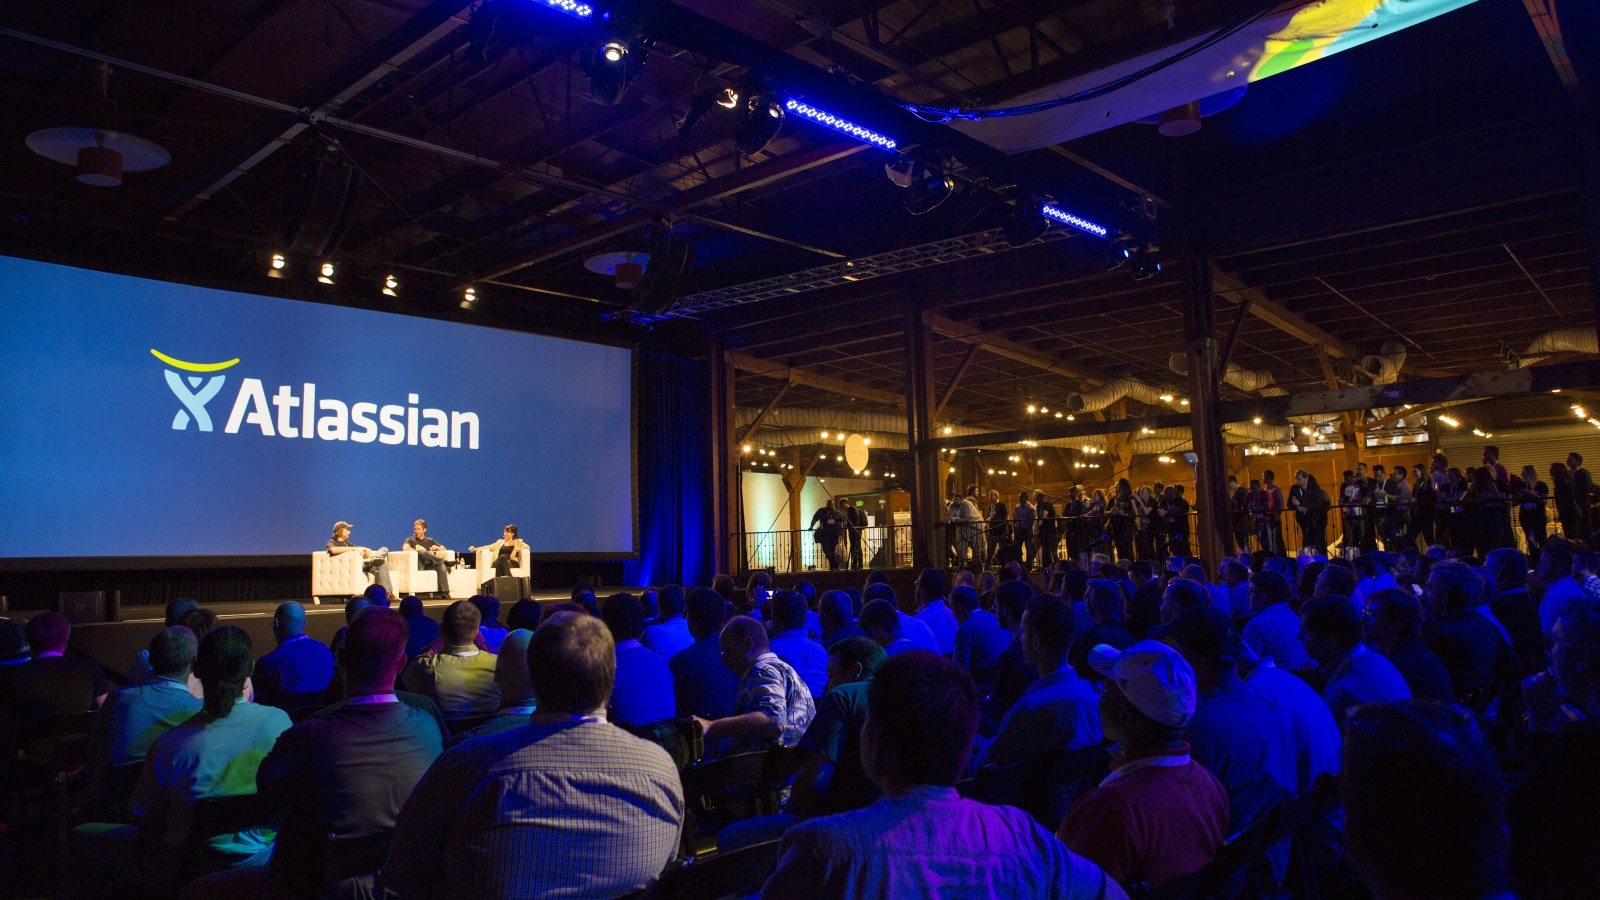 Atlassian Corporation (TEAM) Receives Downgrade From Jefferies. Will Other Analysts Follow Suit?